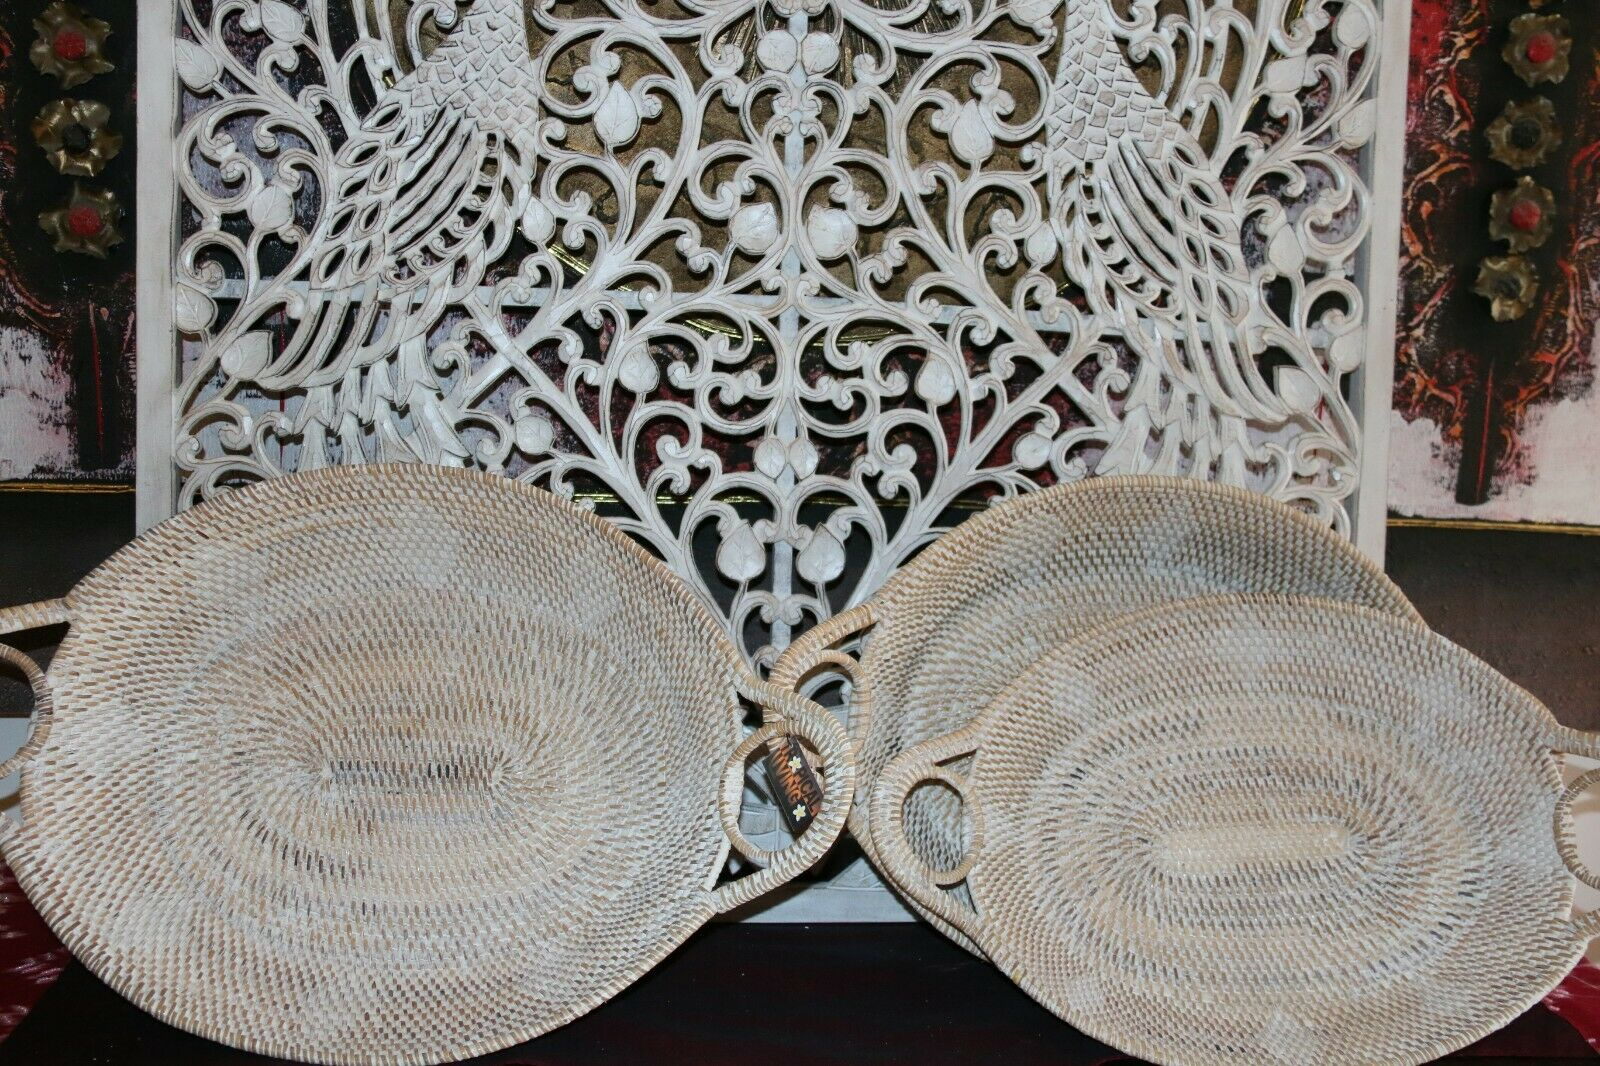 NEW Balinese Hand Woven White Washed Rattan Open Baskets / Trays - 3 sizes avail